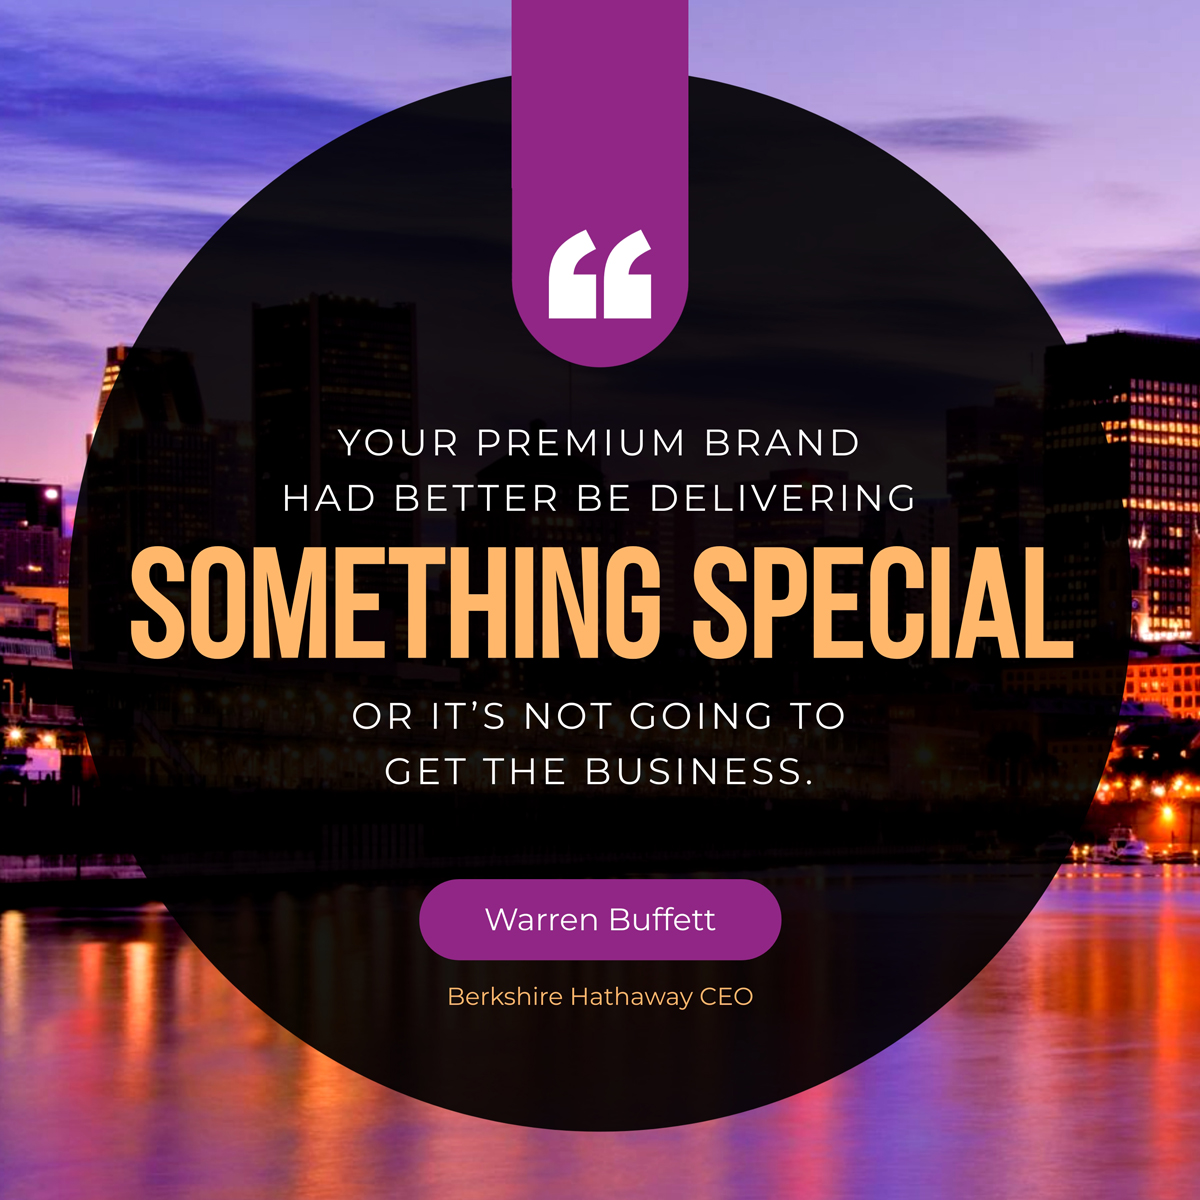 A quote about branding by Warren Buffett.